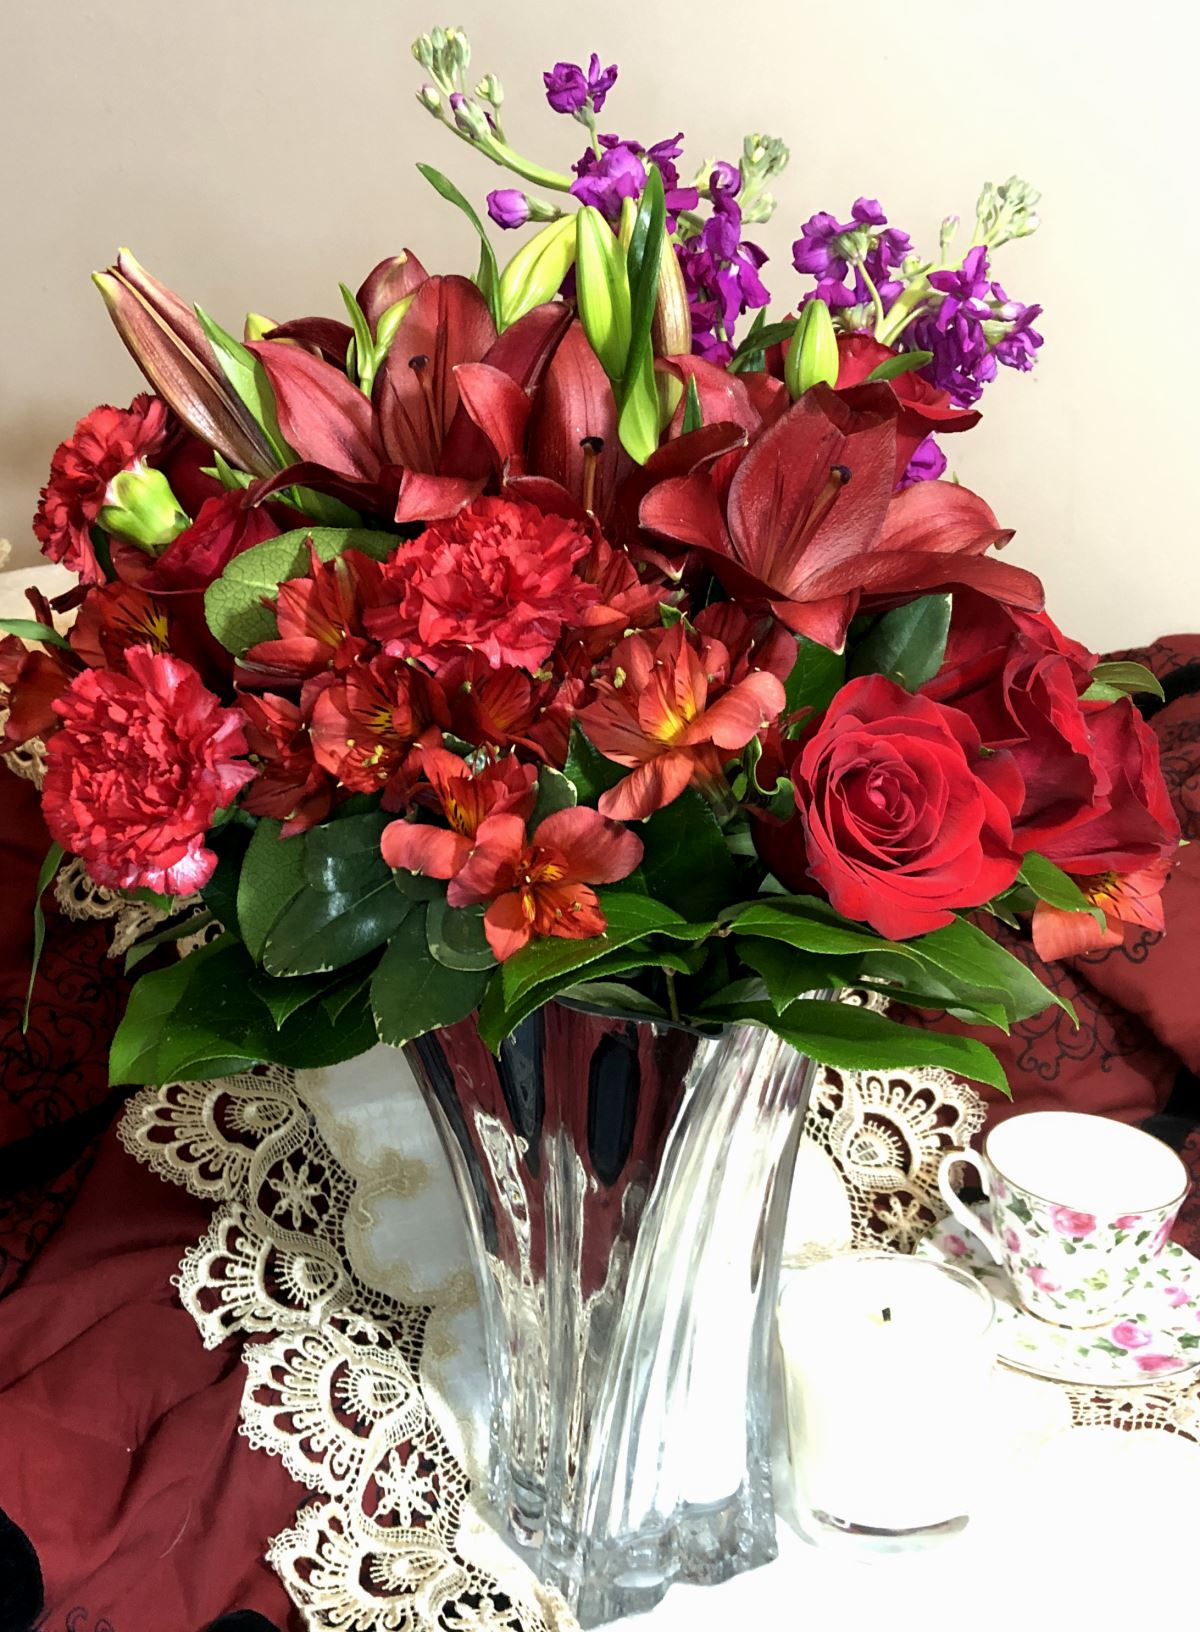 Reasons To Give A Beautiful Bouquet Of Flowers Powered By Mom